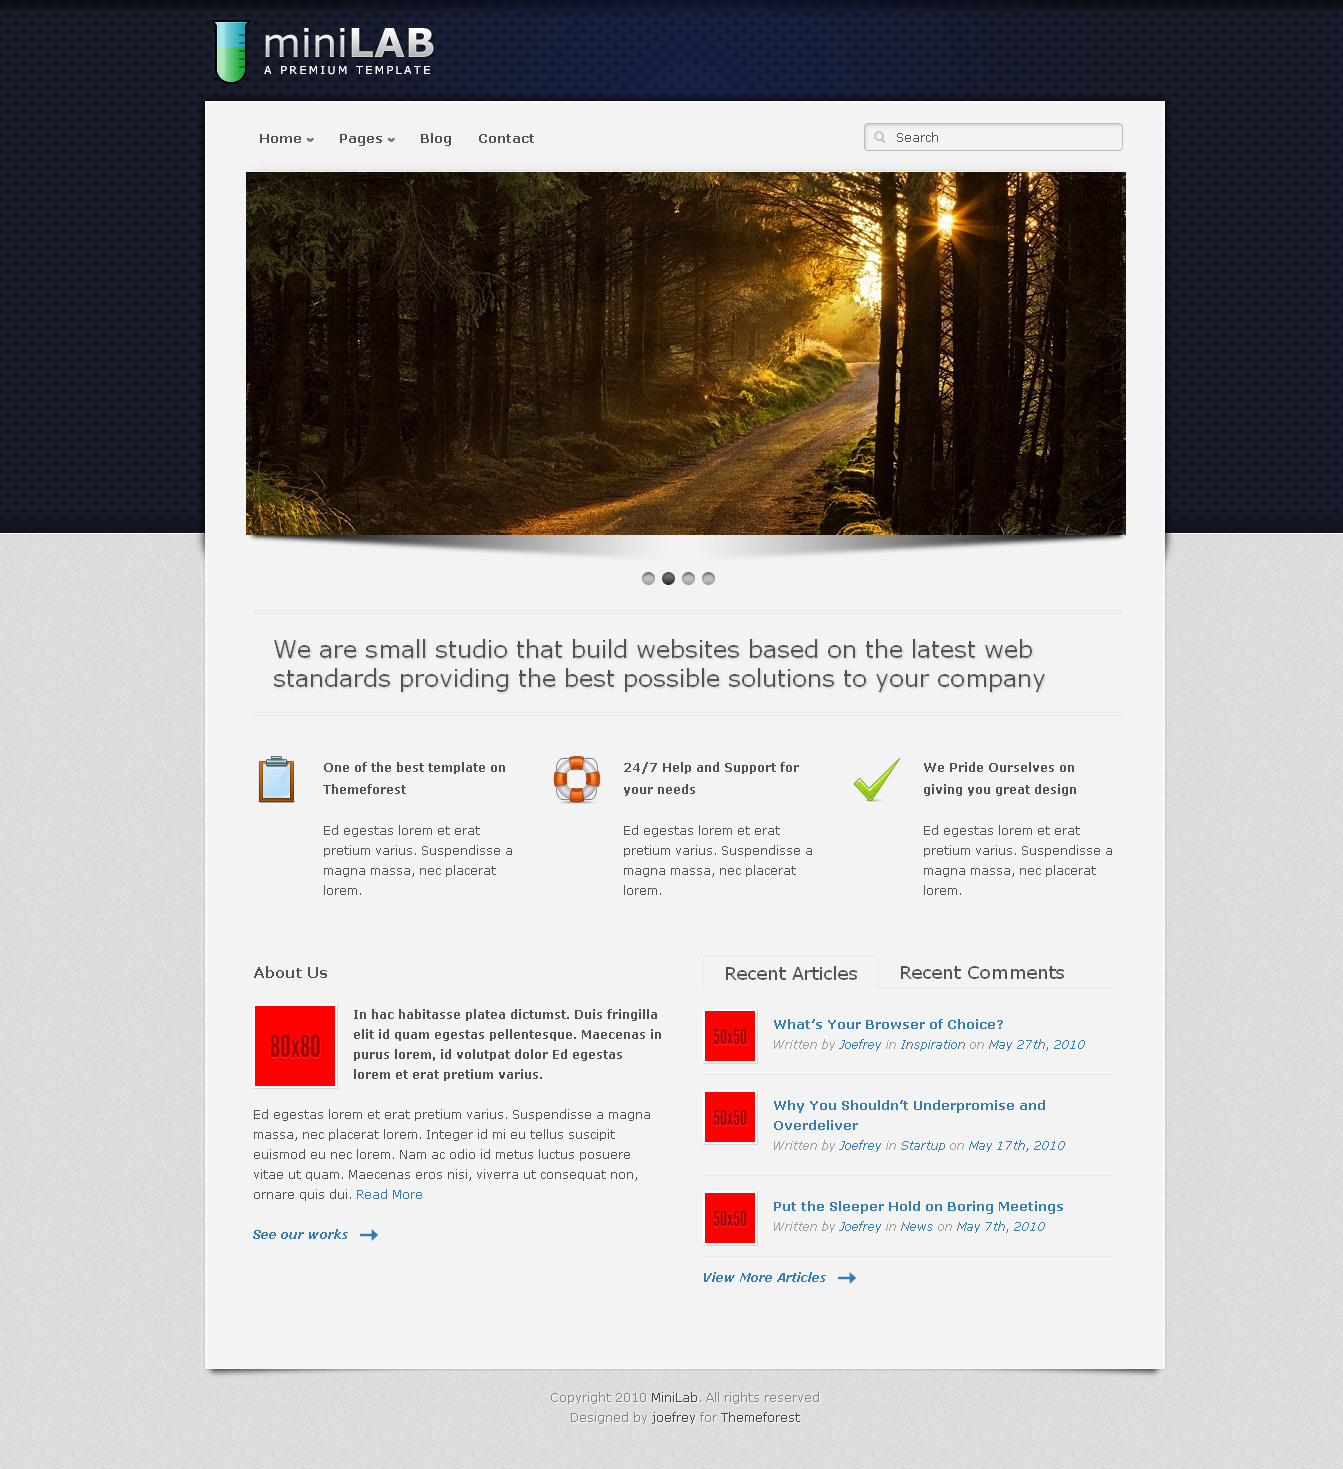 Mini Lab - Premium Wordpress Theme 15 in 1